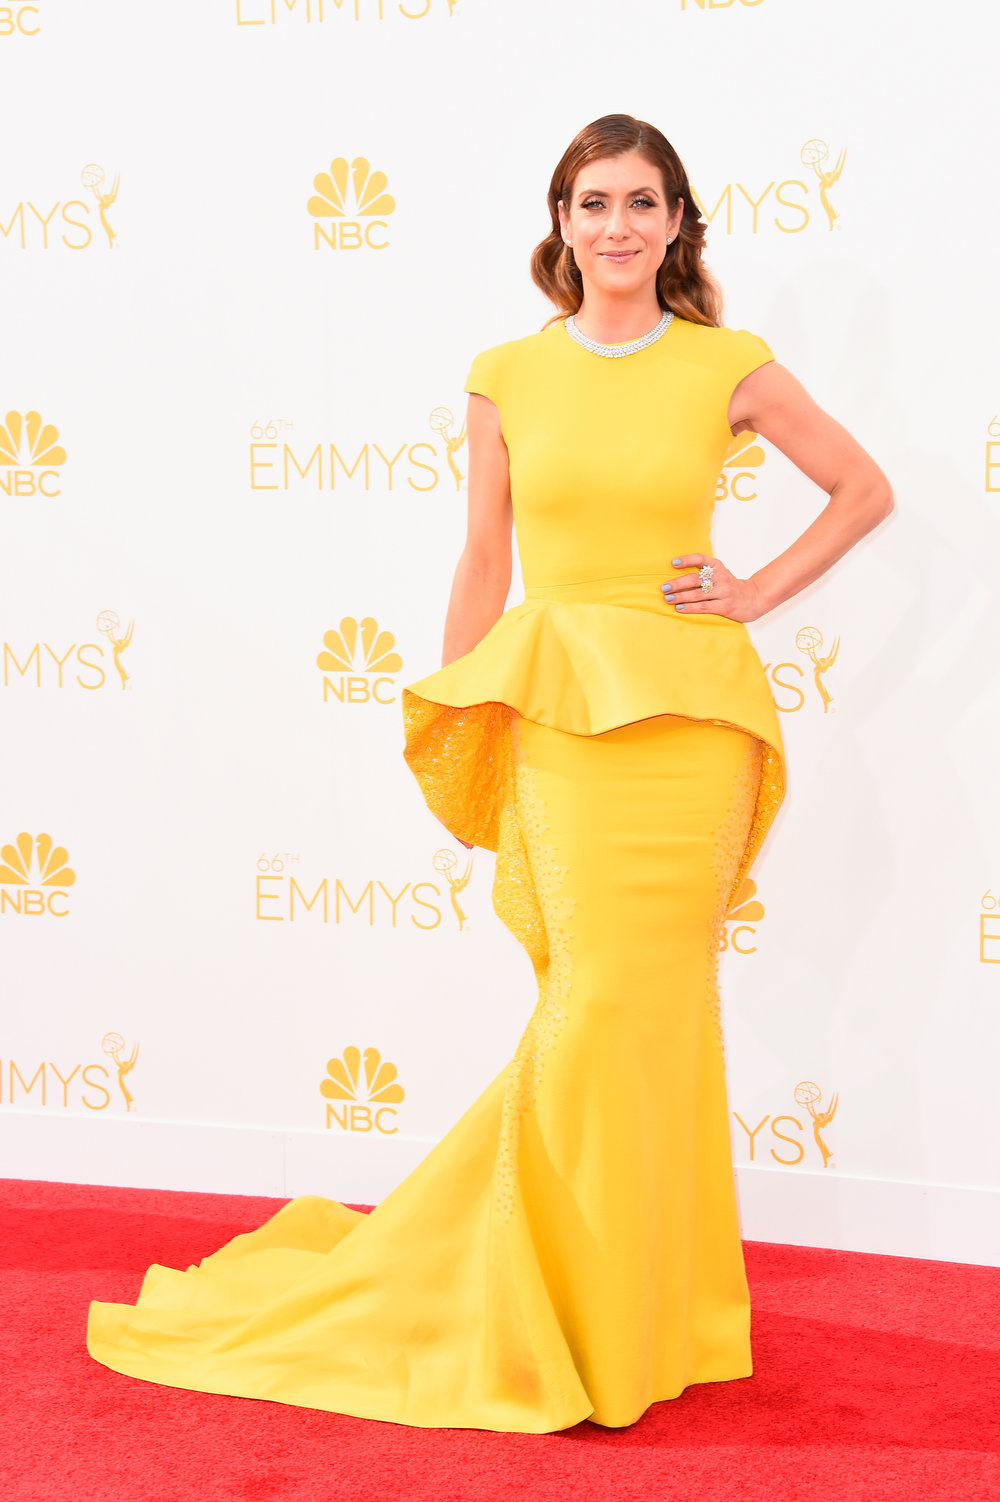 . Actress Kate Walsh attends the 66th Annual Primetime Emmy Awards held at Nokia Theatre L.A. Live on August 25, 2014 in Los Angeles, California.  (Photo by Frazer Harrison/Getty Images)